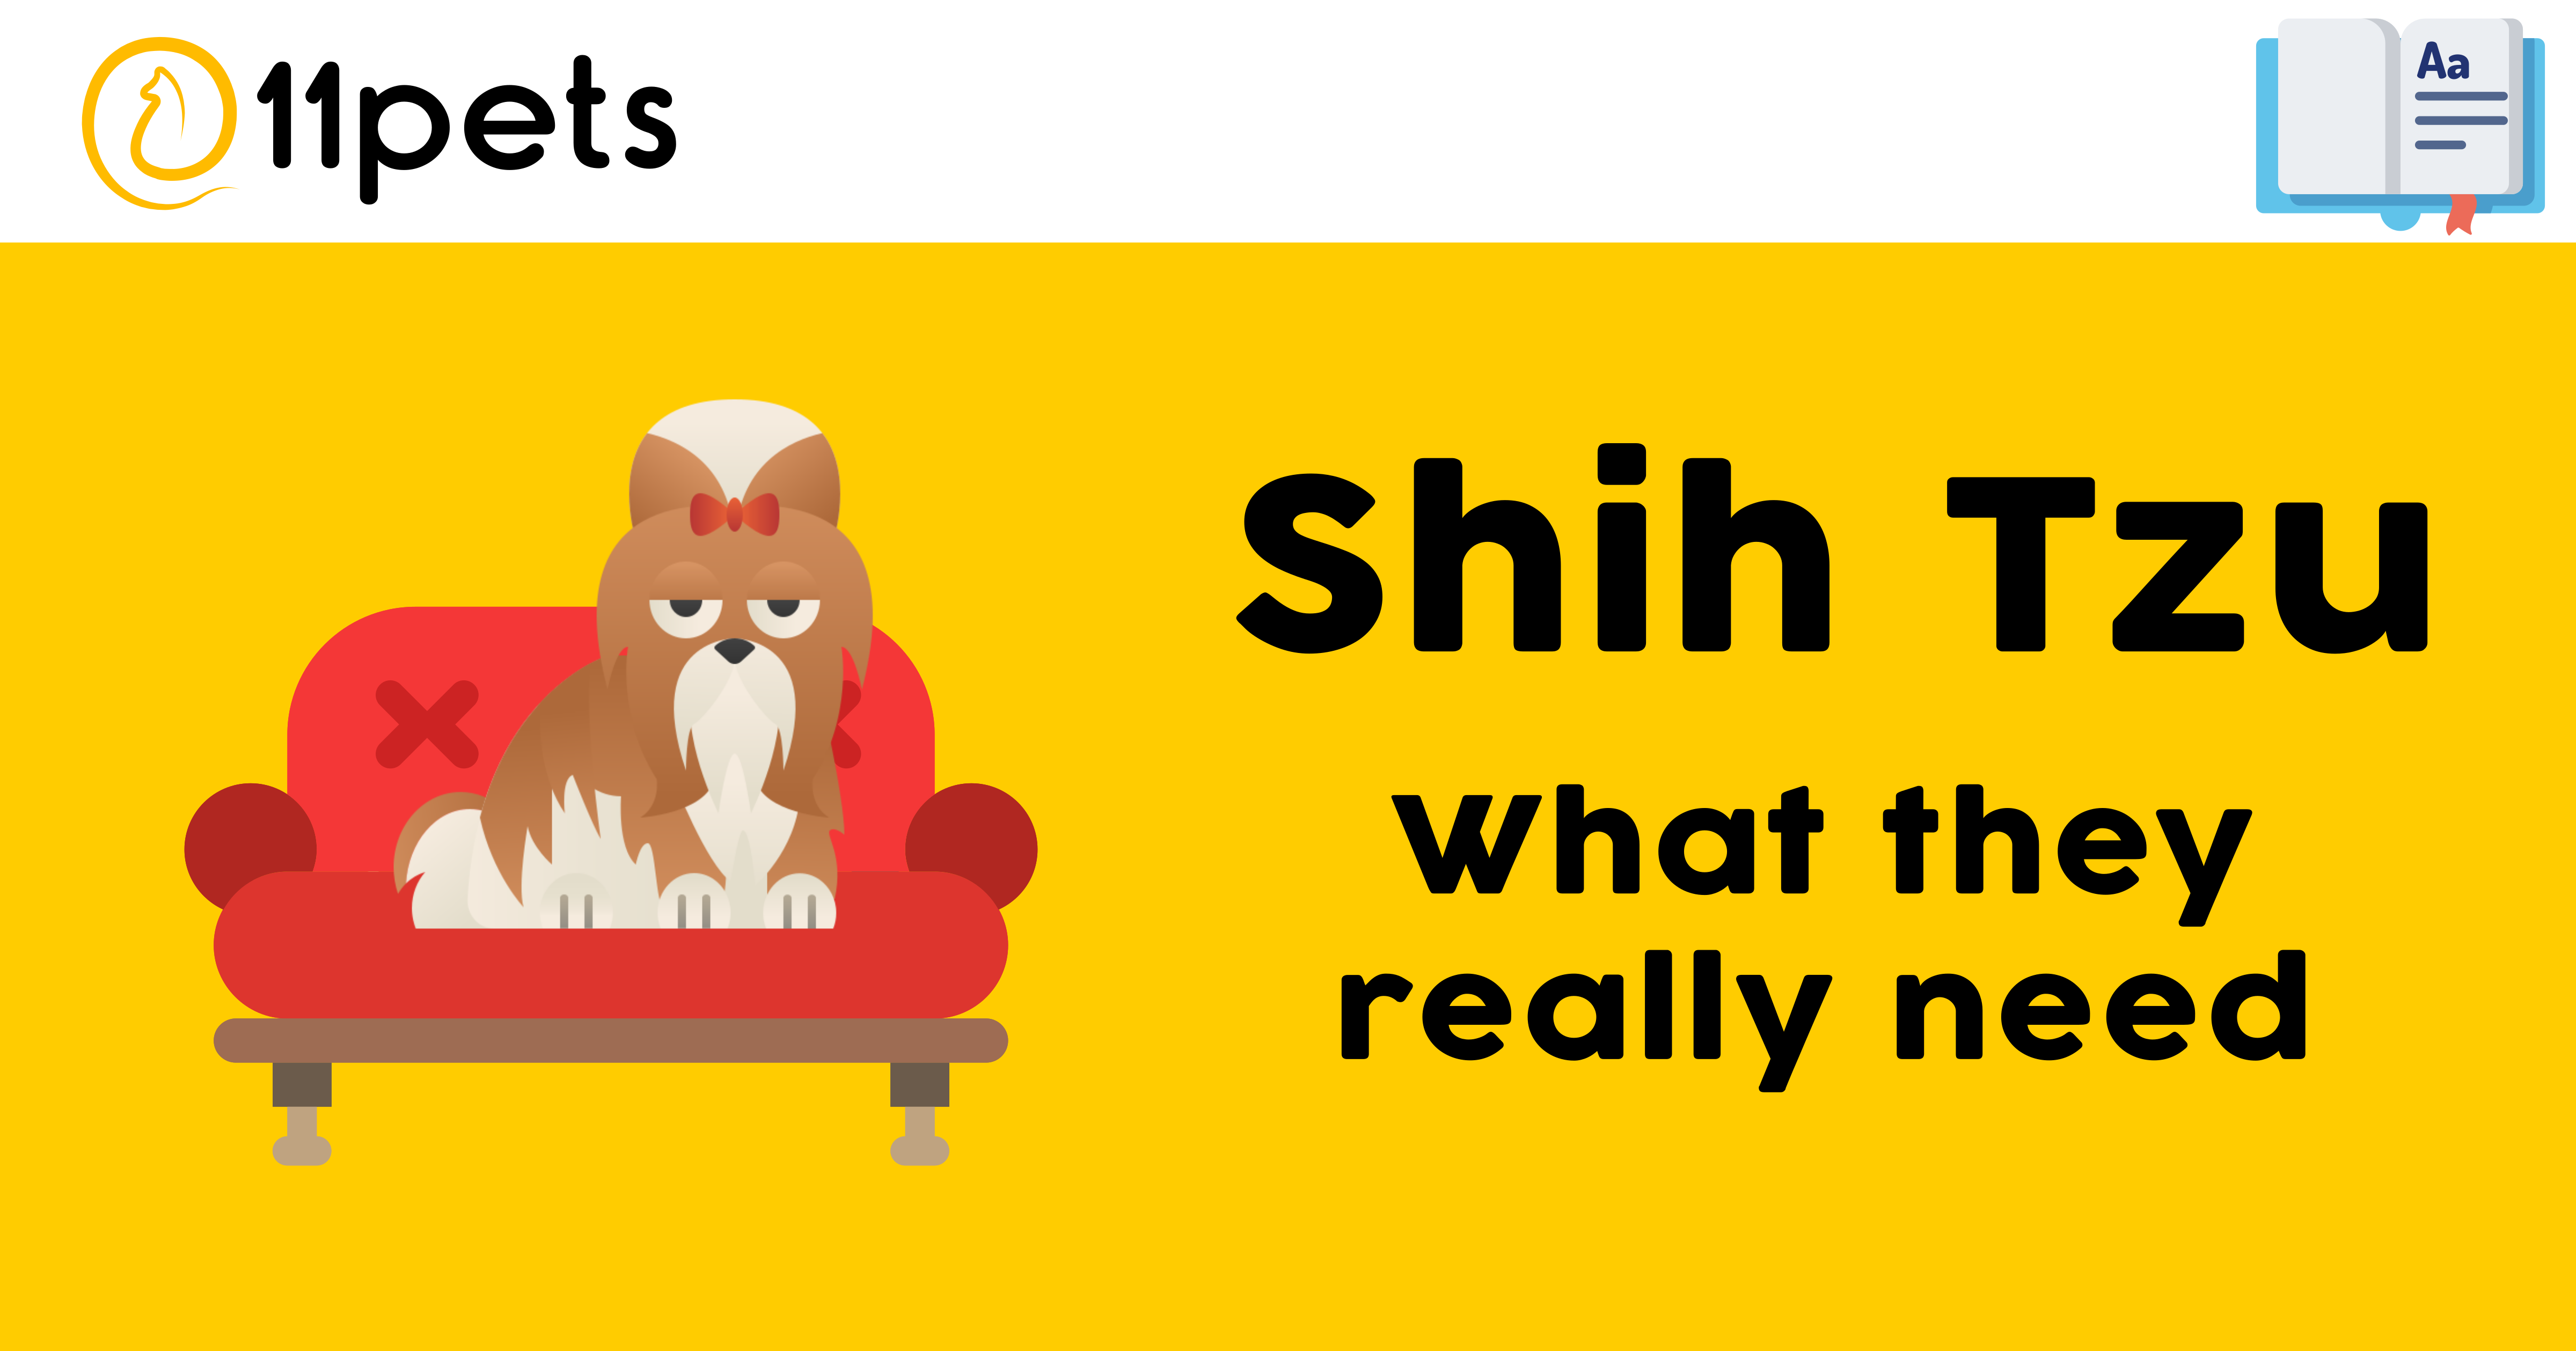 Shih Tzu - What they really need